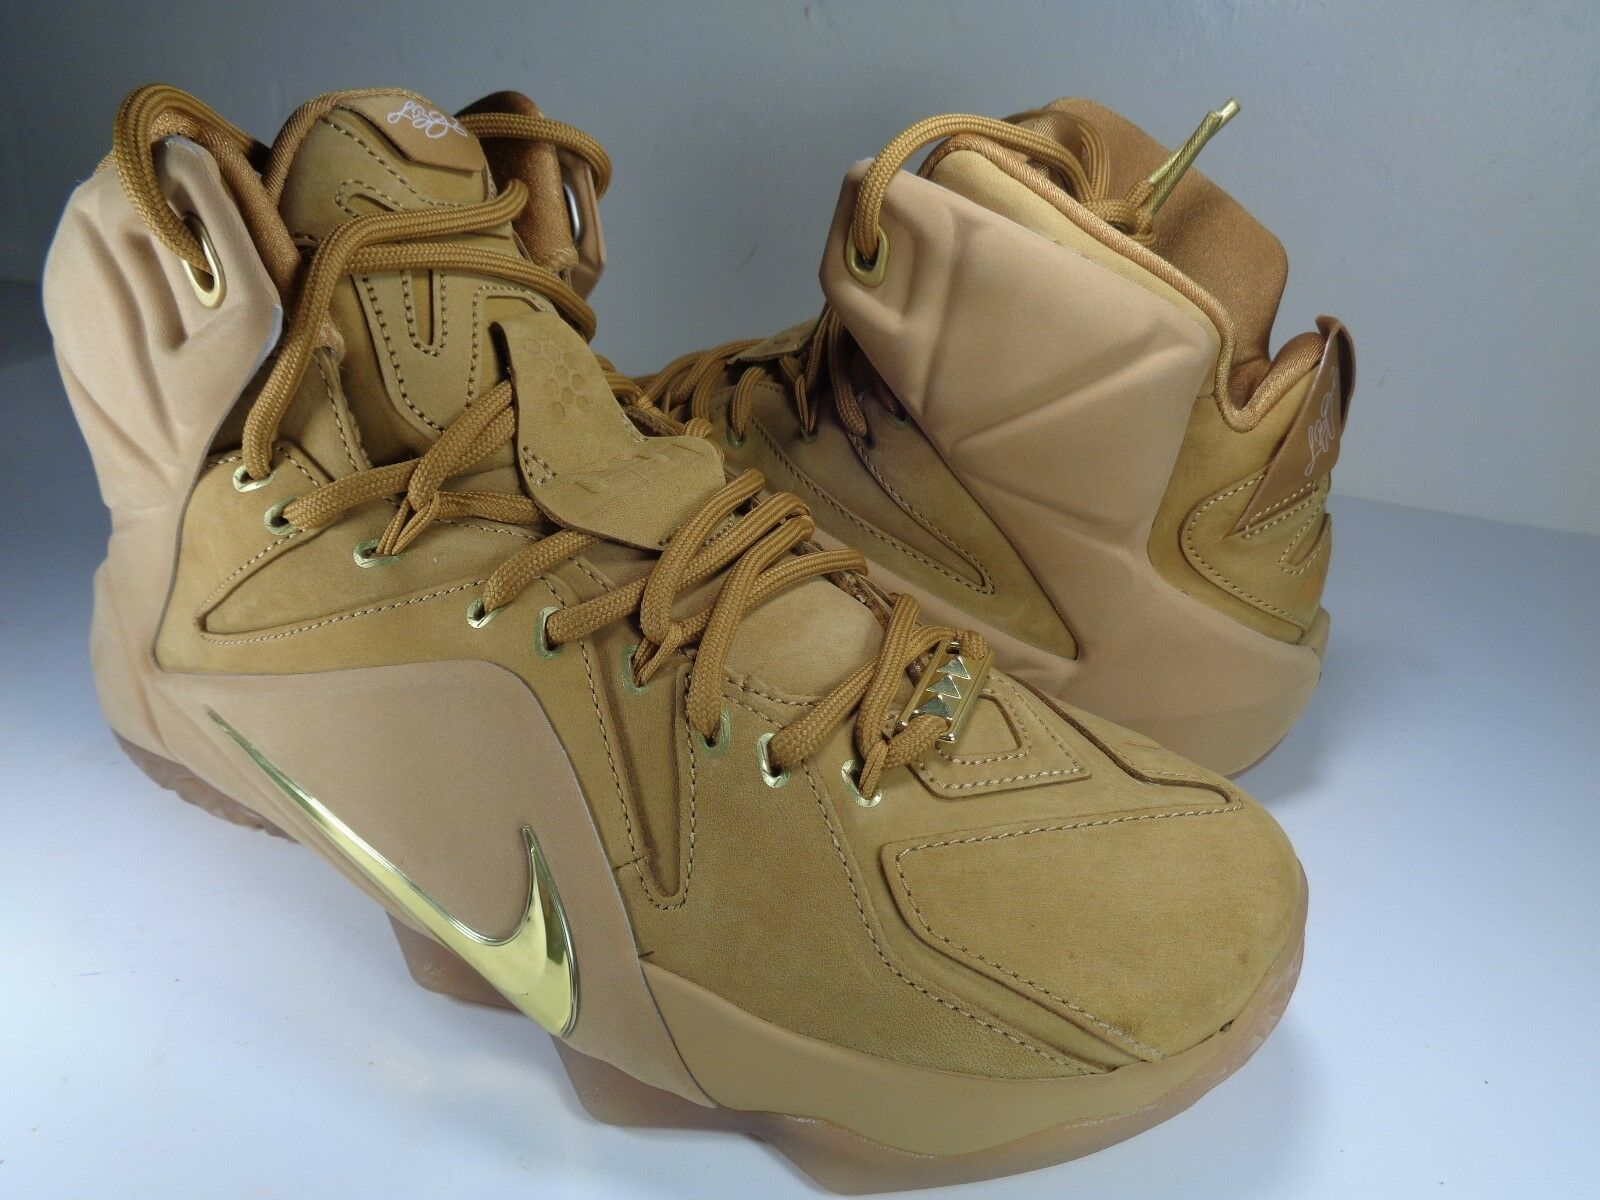 Nike Lebron XII Metallic 12 EXT QS Wheat Metallic XII Gold Gum OG James SZ 9.5 (744287-700) 6e090f